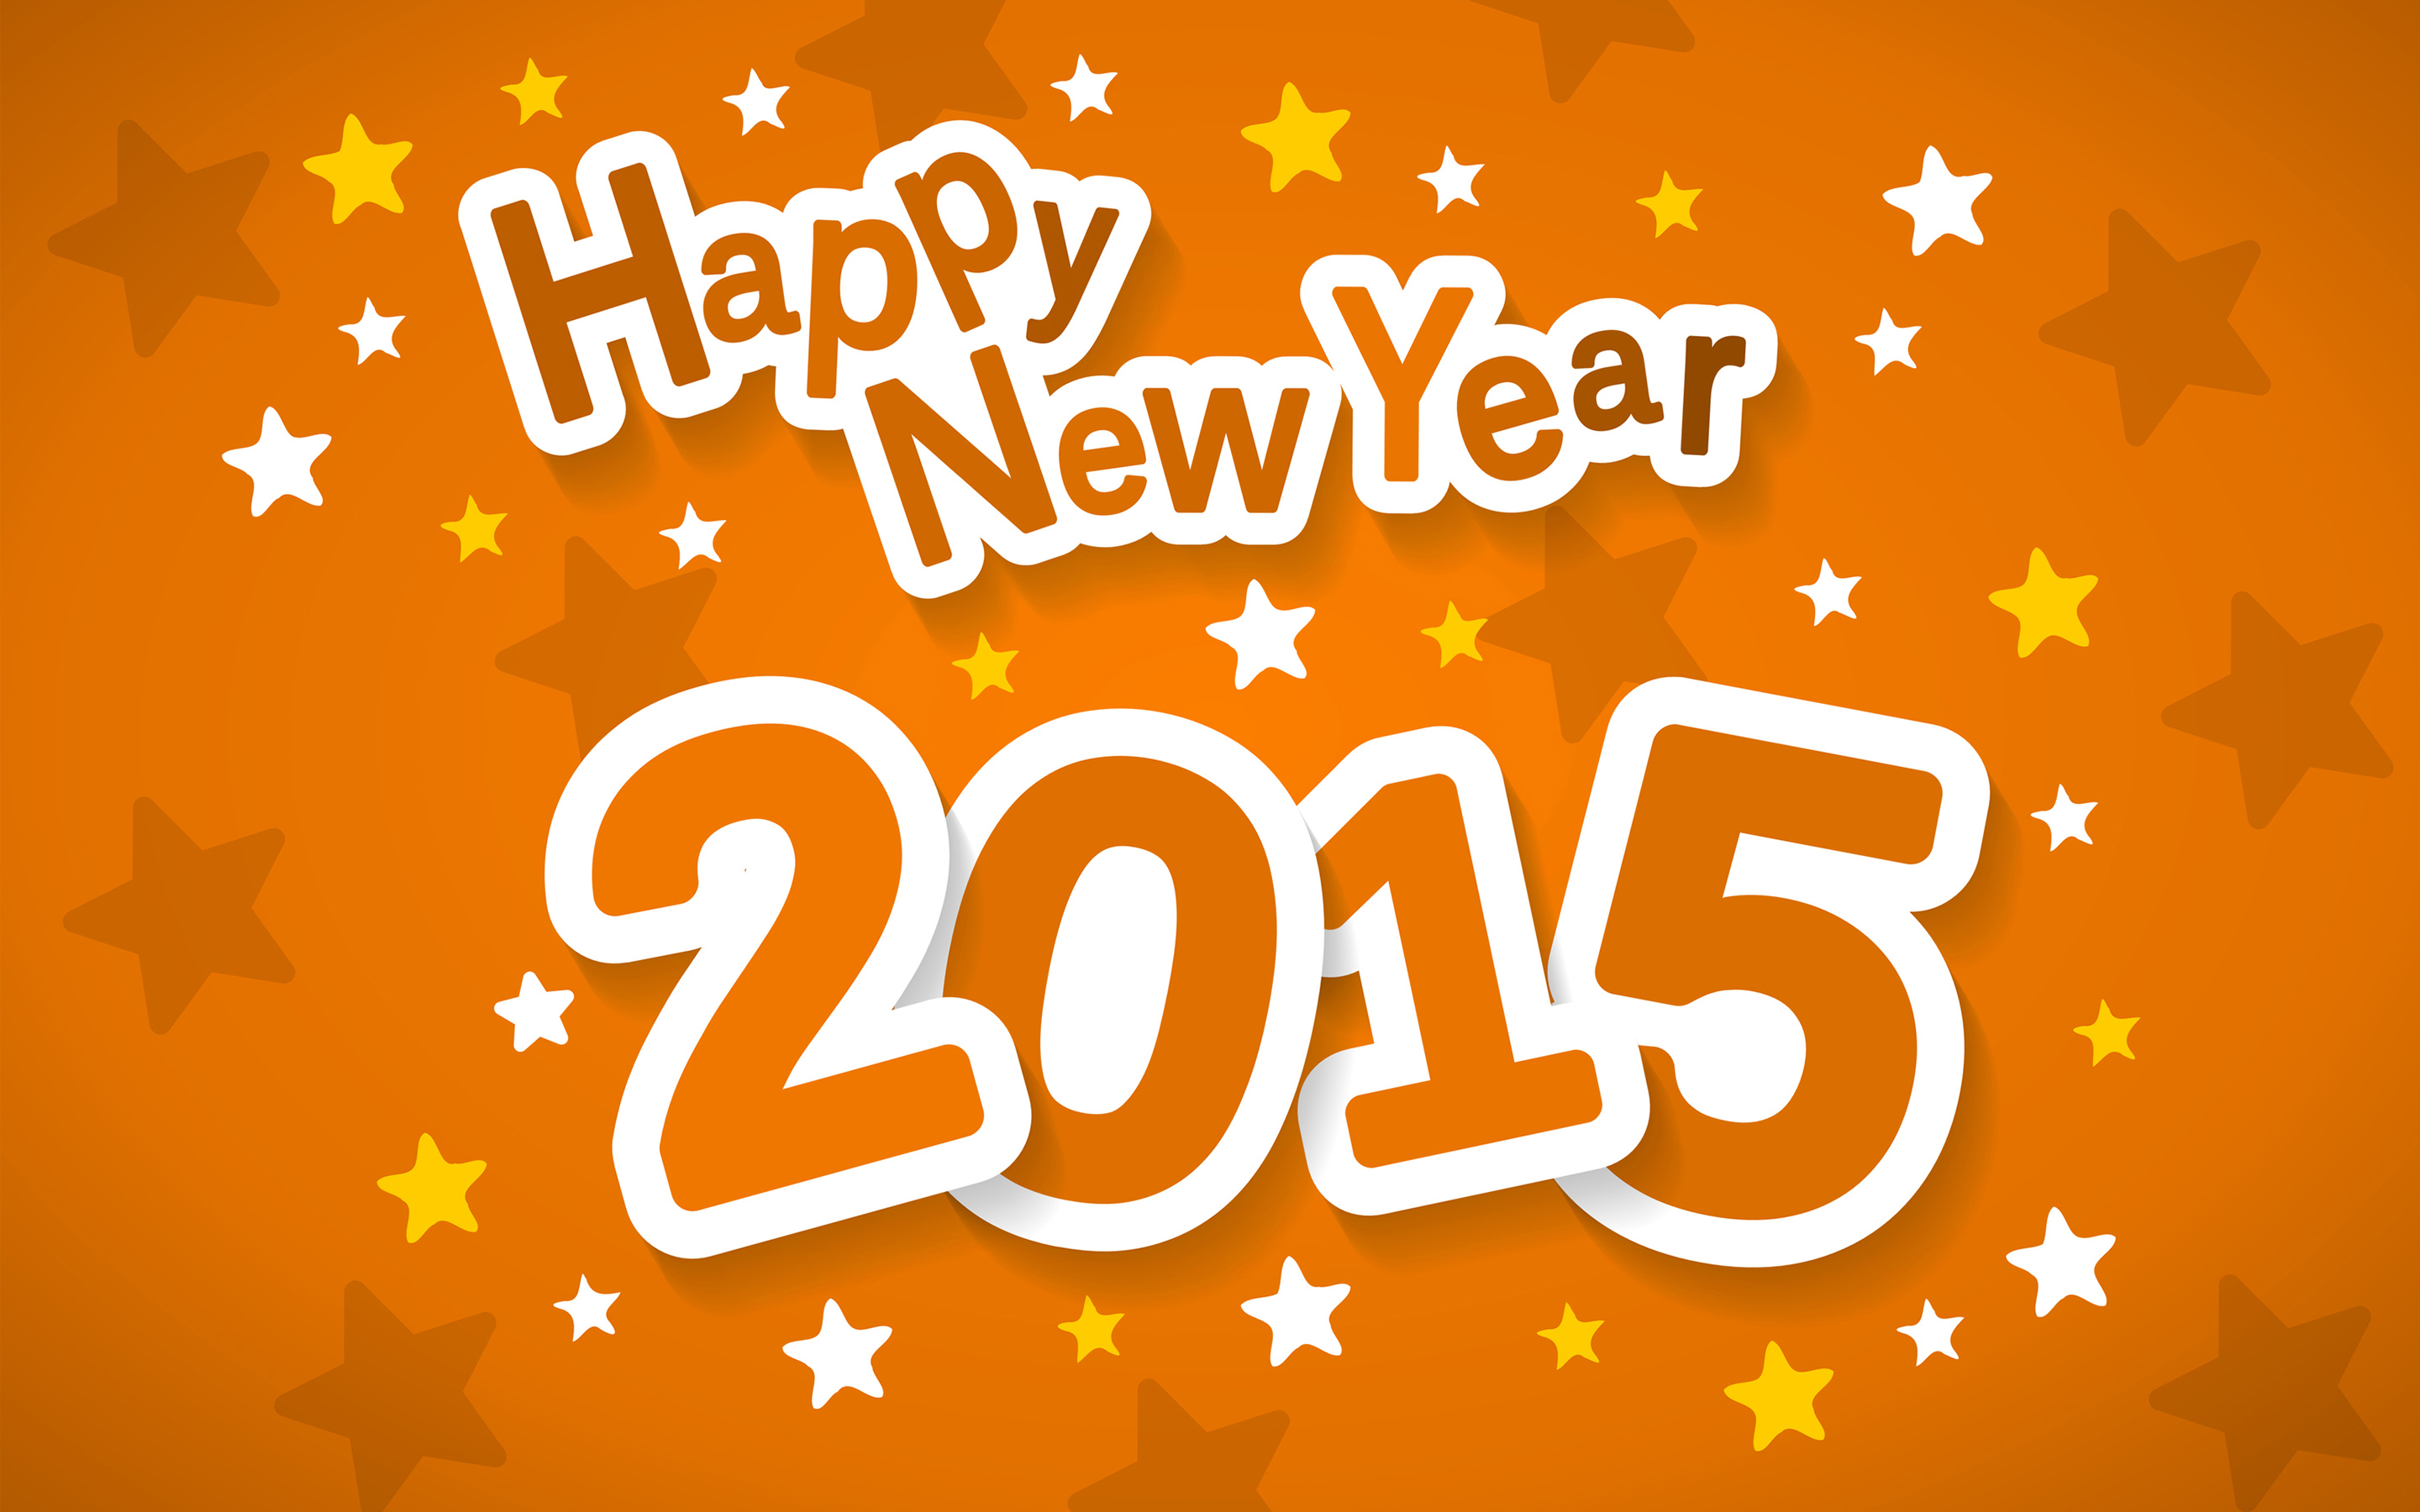 HD Wallpapers Happy New Year 2015